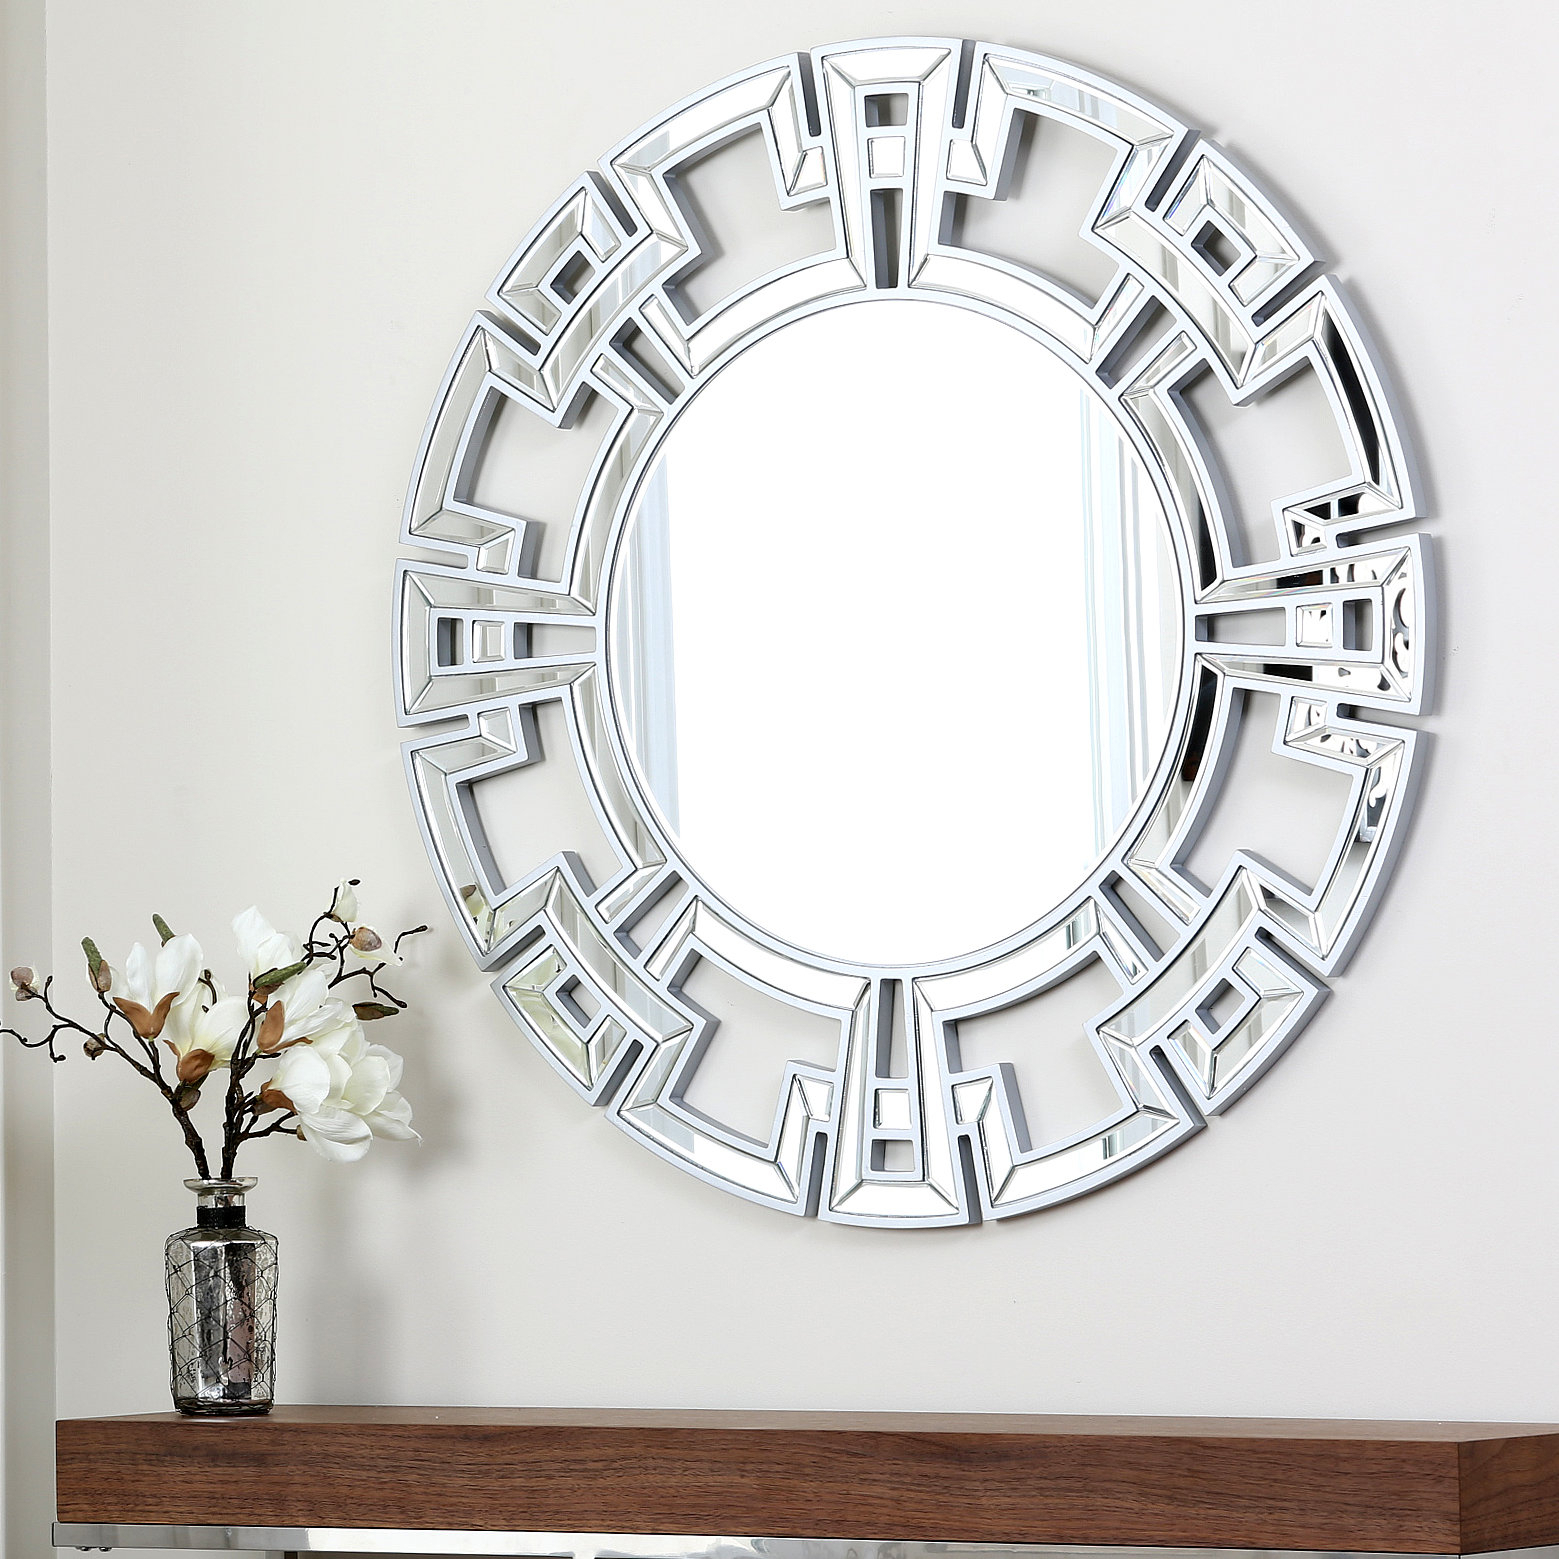 Willa Arlo Interiors Tata Openwork Round Wall Mirror Regarding Dandre Wall Mirrors (Image 19 of 20)